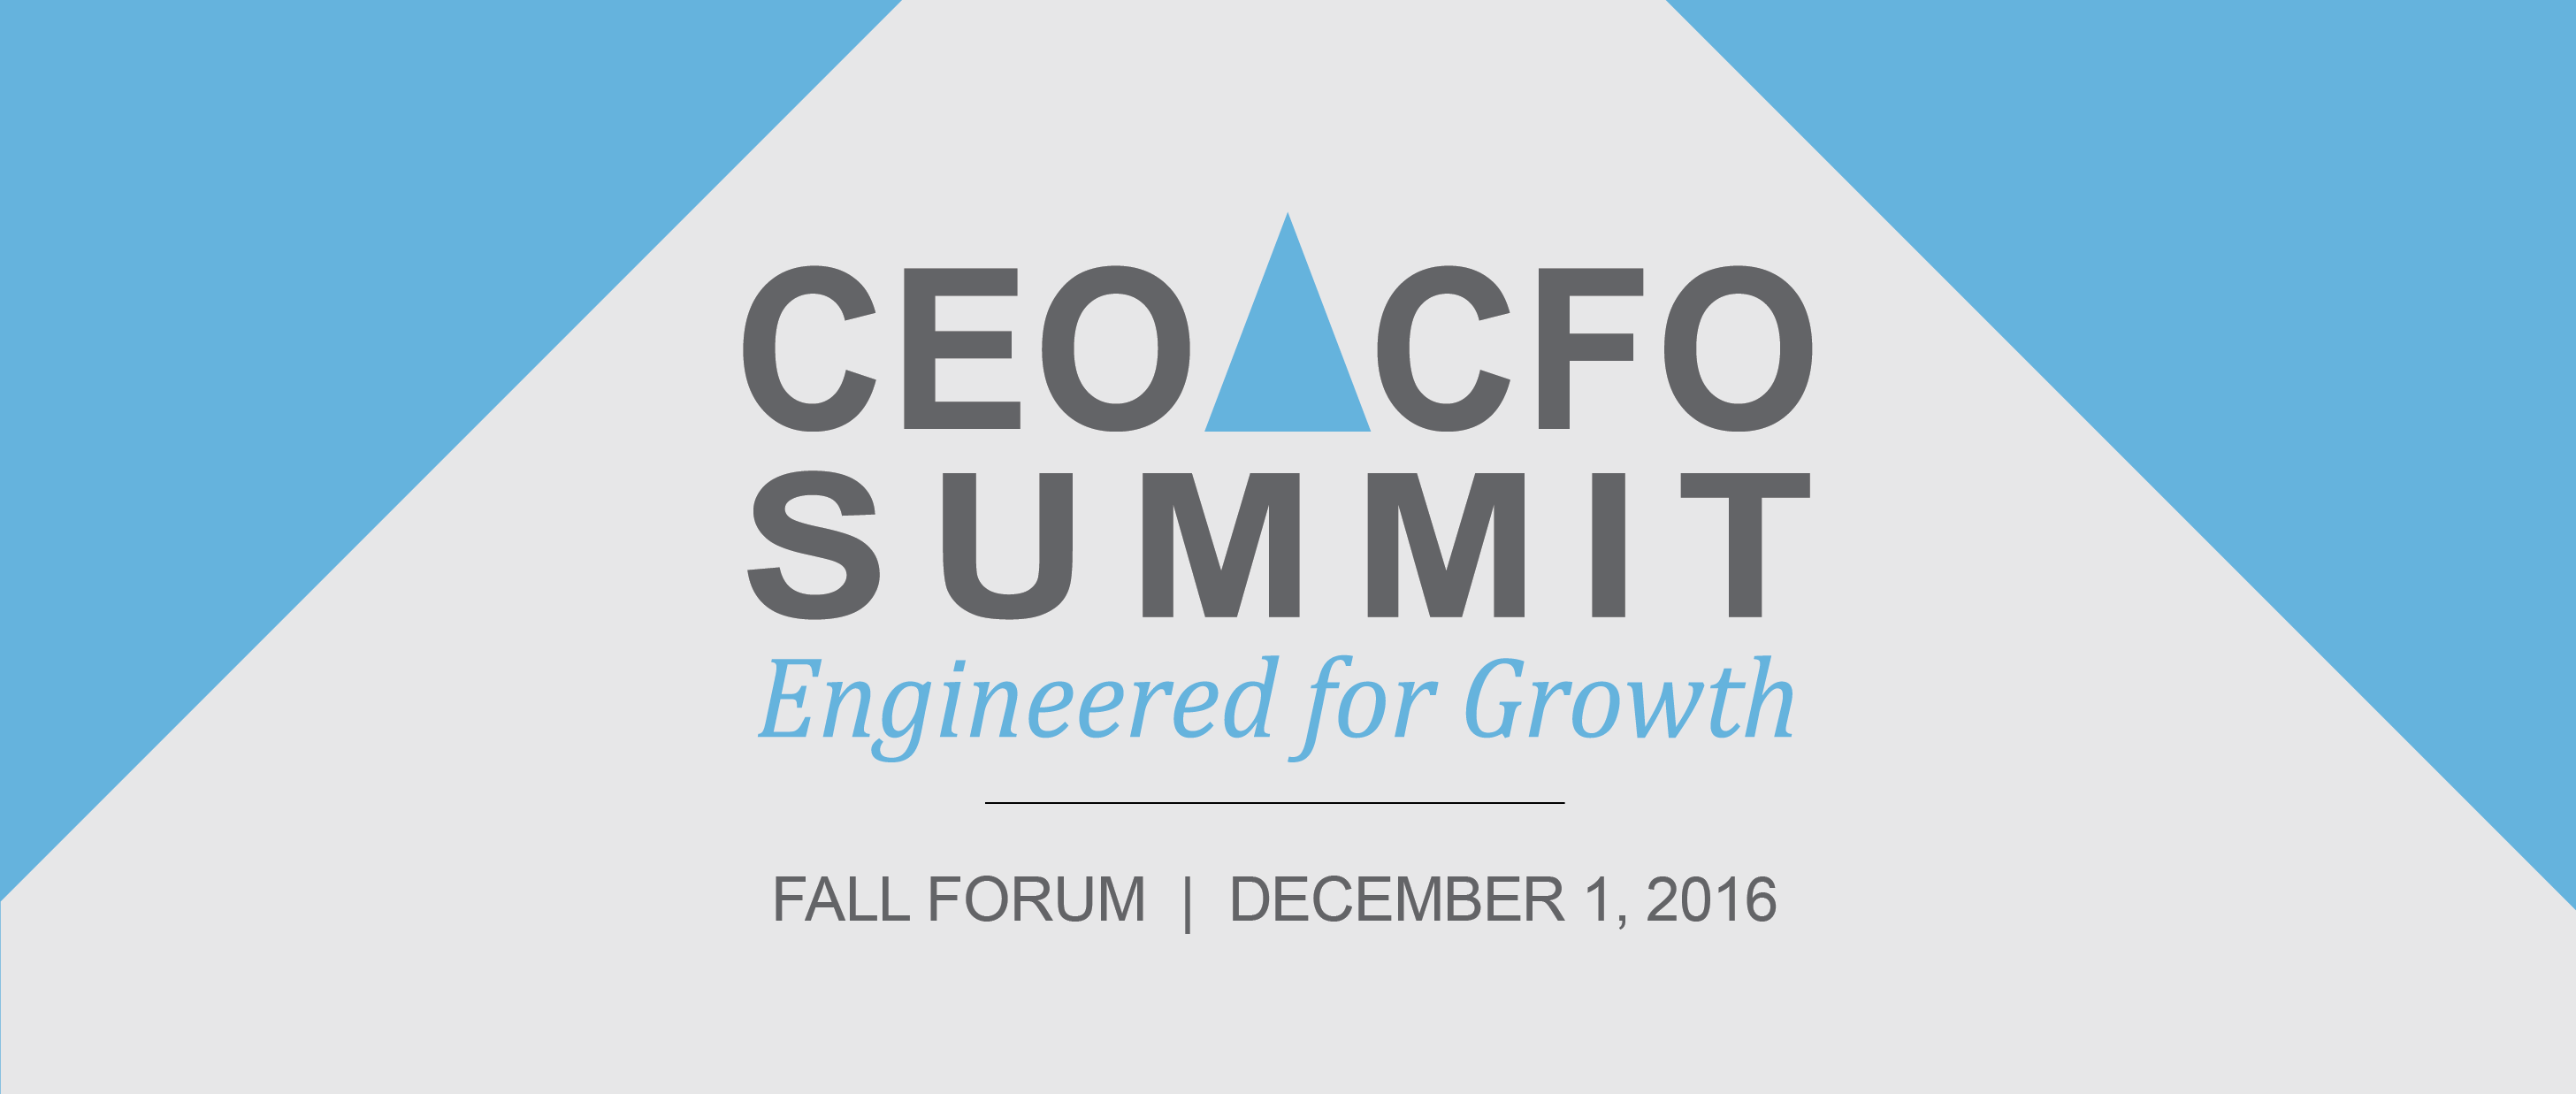 1073 -- CEO CFO Summit - FALL Forum 2016_Dec